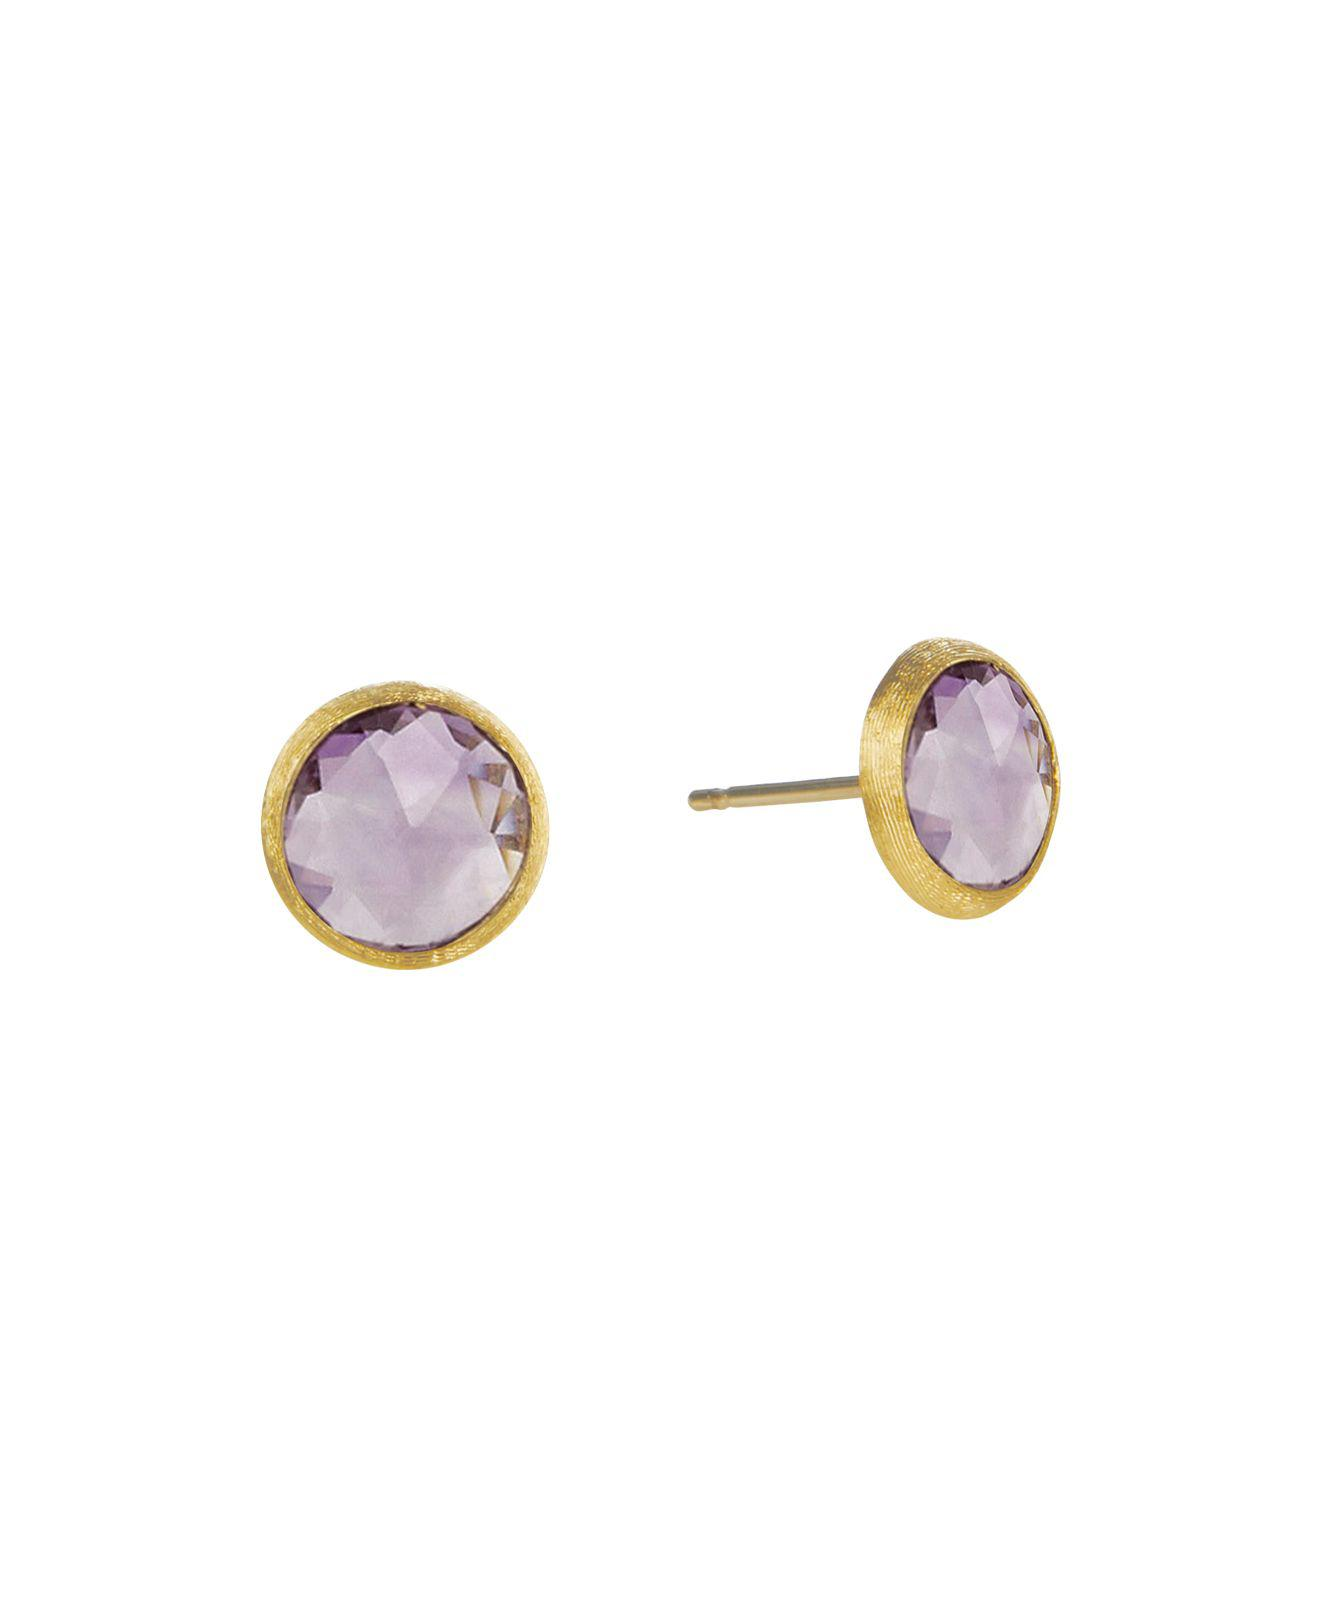 Marco Bicego Jaipur Amethyst Stud Earrings 6TkeTHn4c